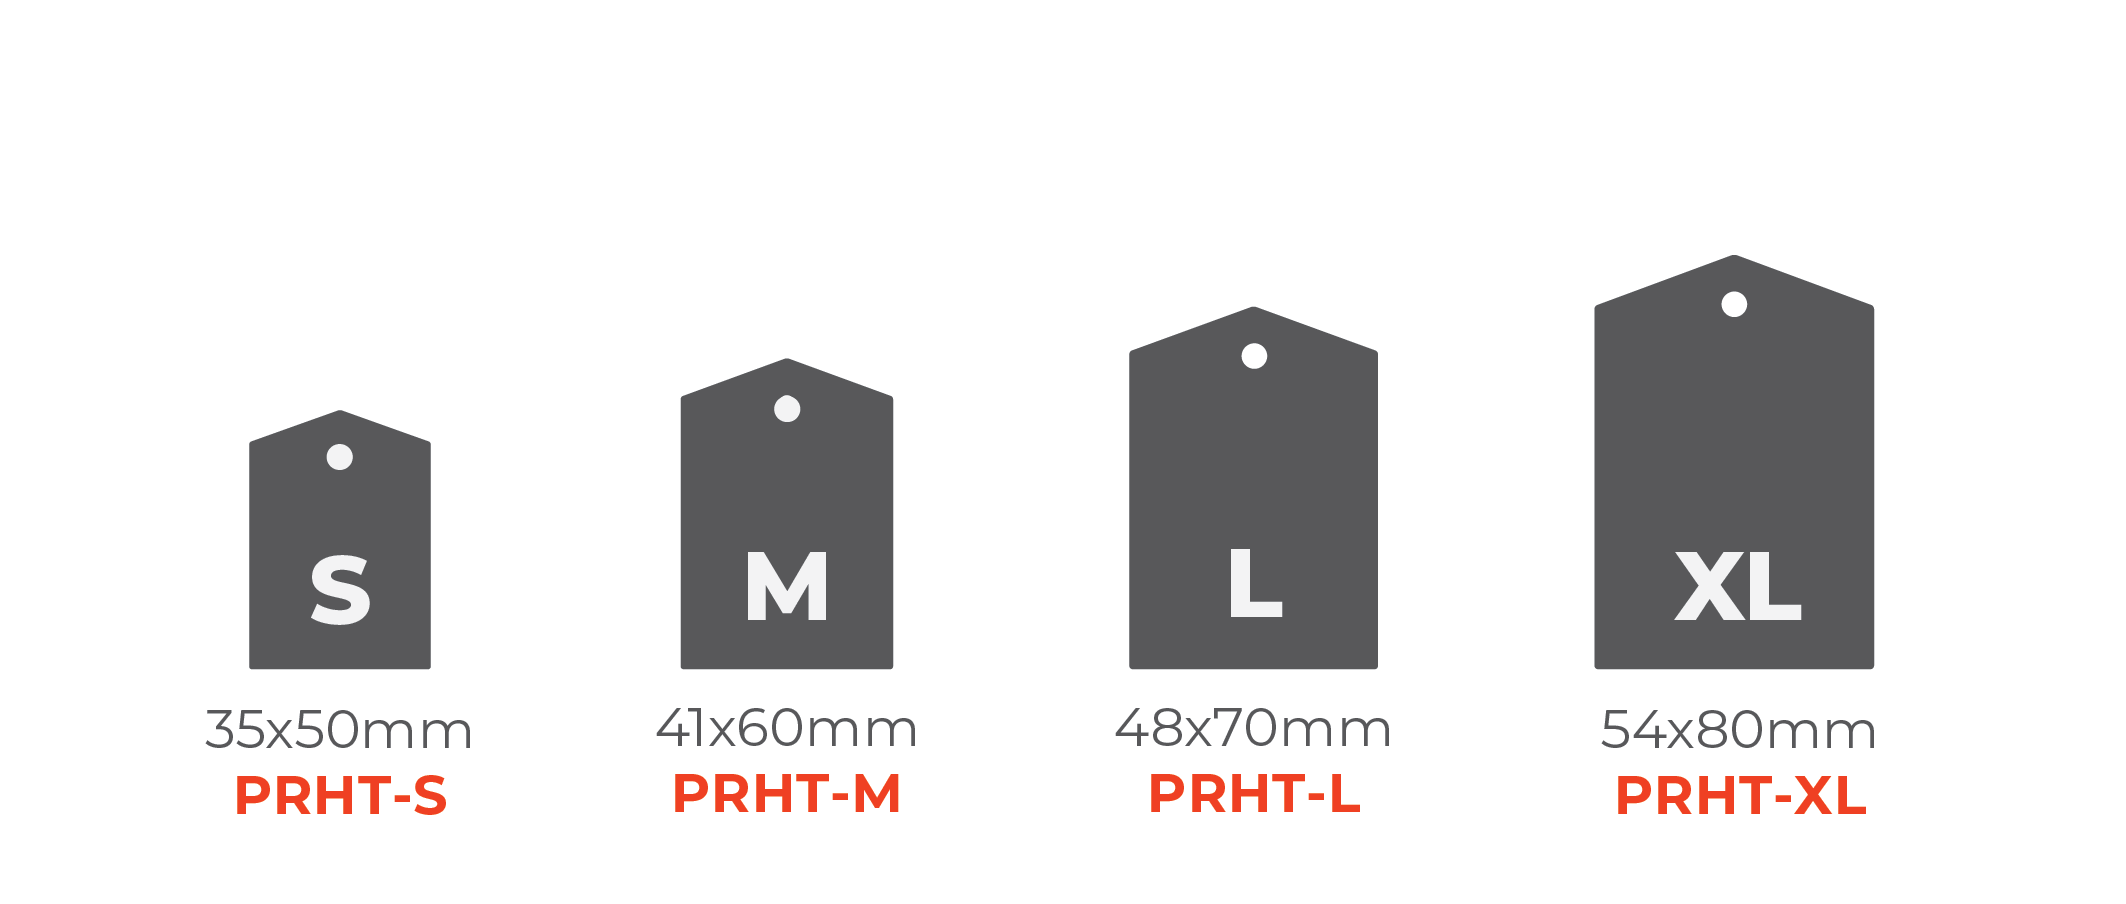 Double Pasted Hang Tags - Price Tags 0x0mm 01 Image